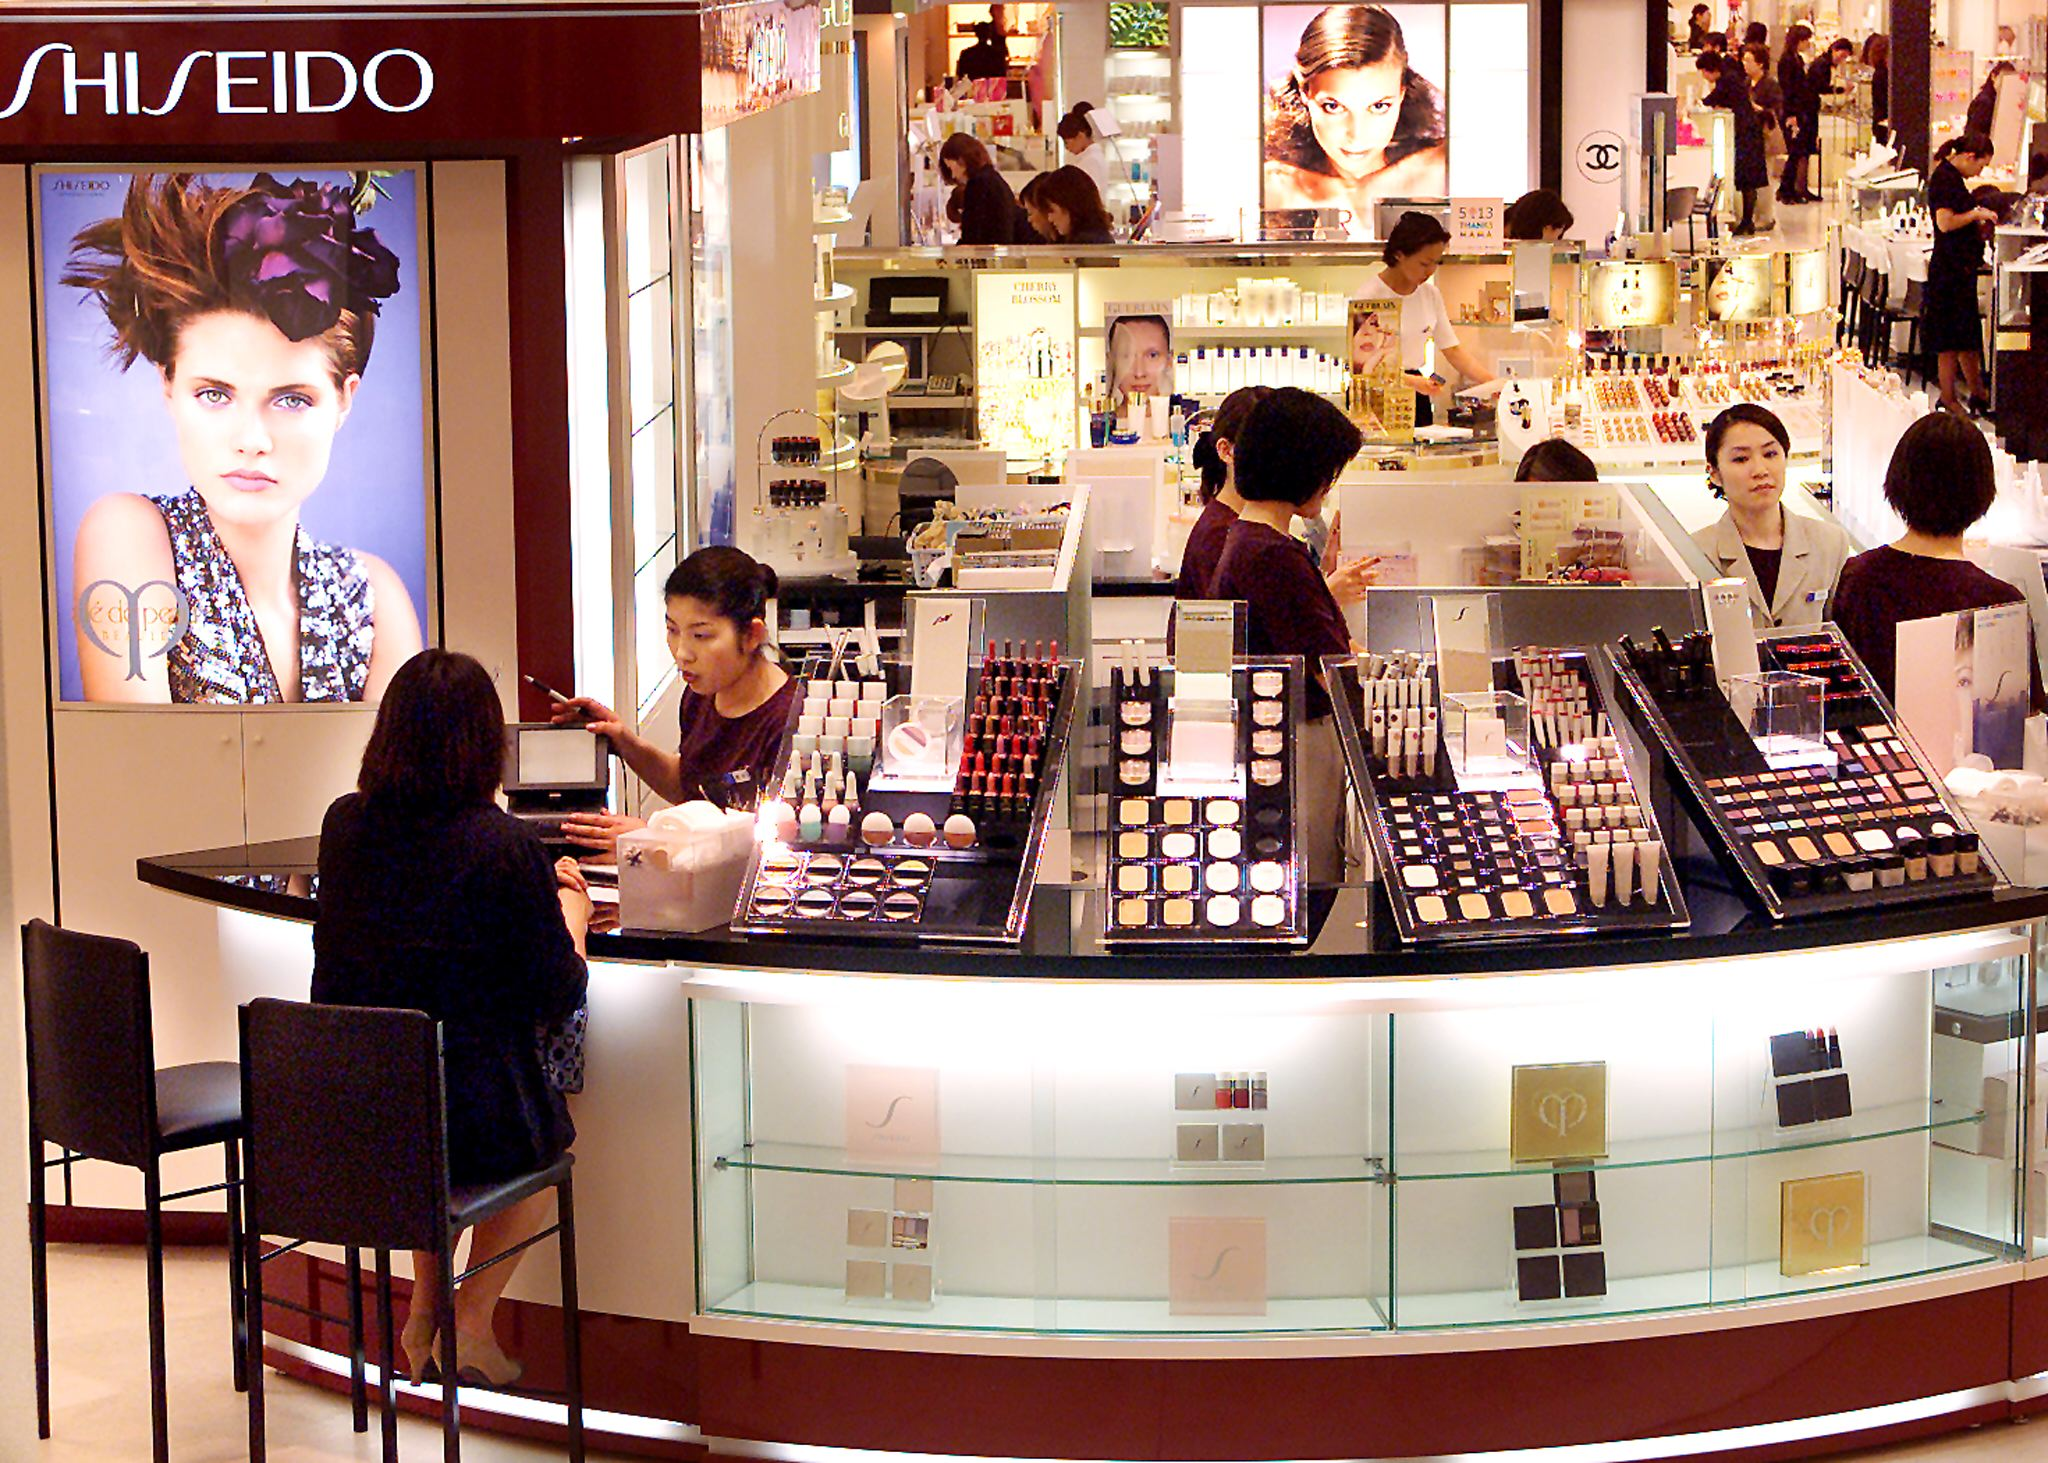 Shiseido Just Bought Customized Makeup Startup Matchco Fortune